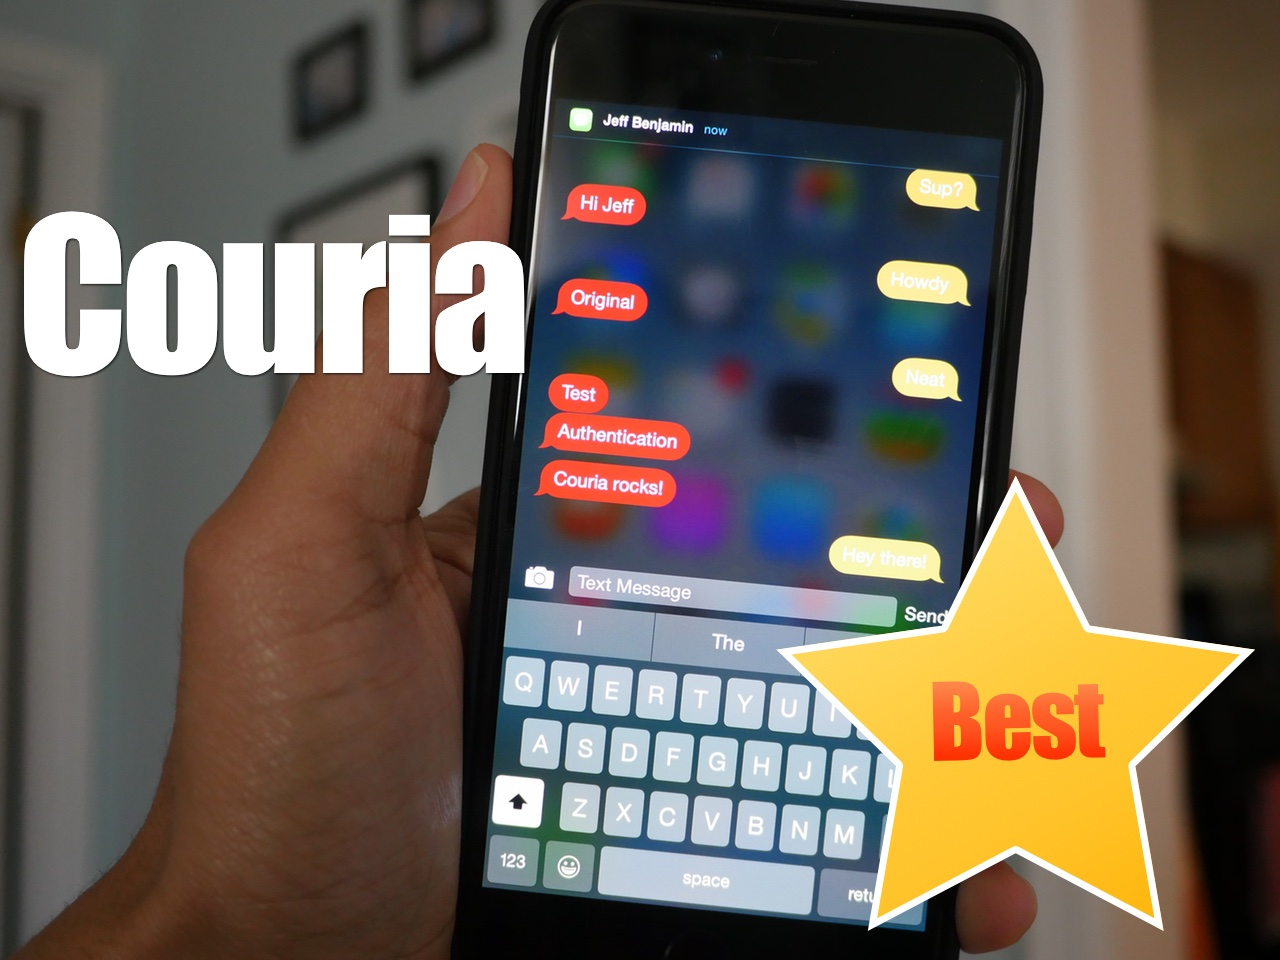 Couria Best of the Best Quick Reply